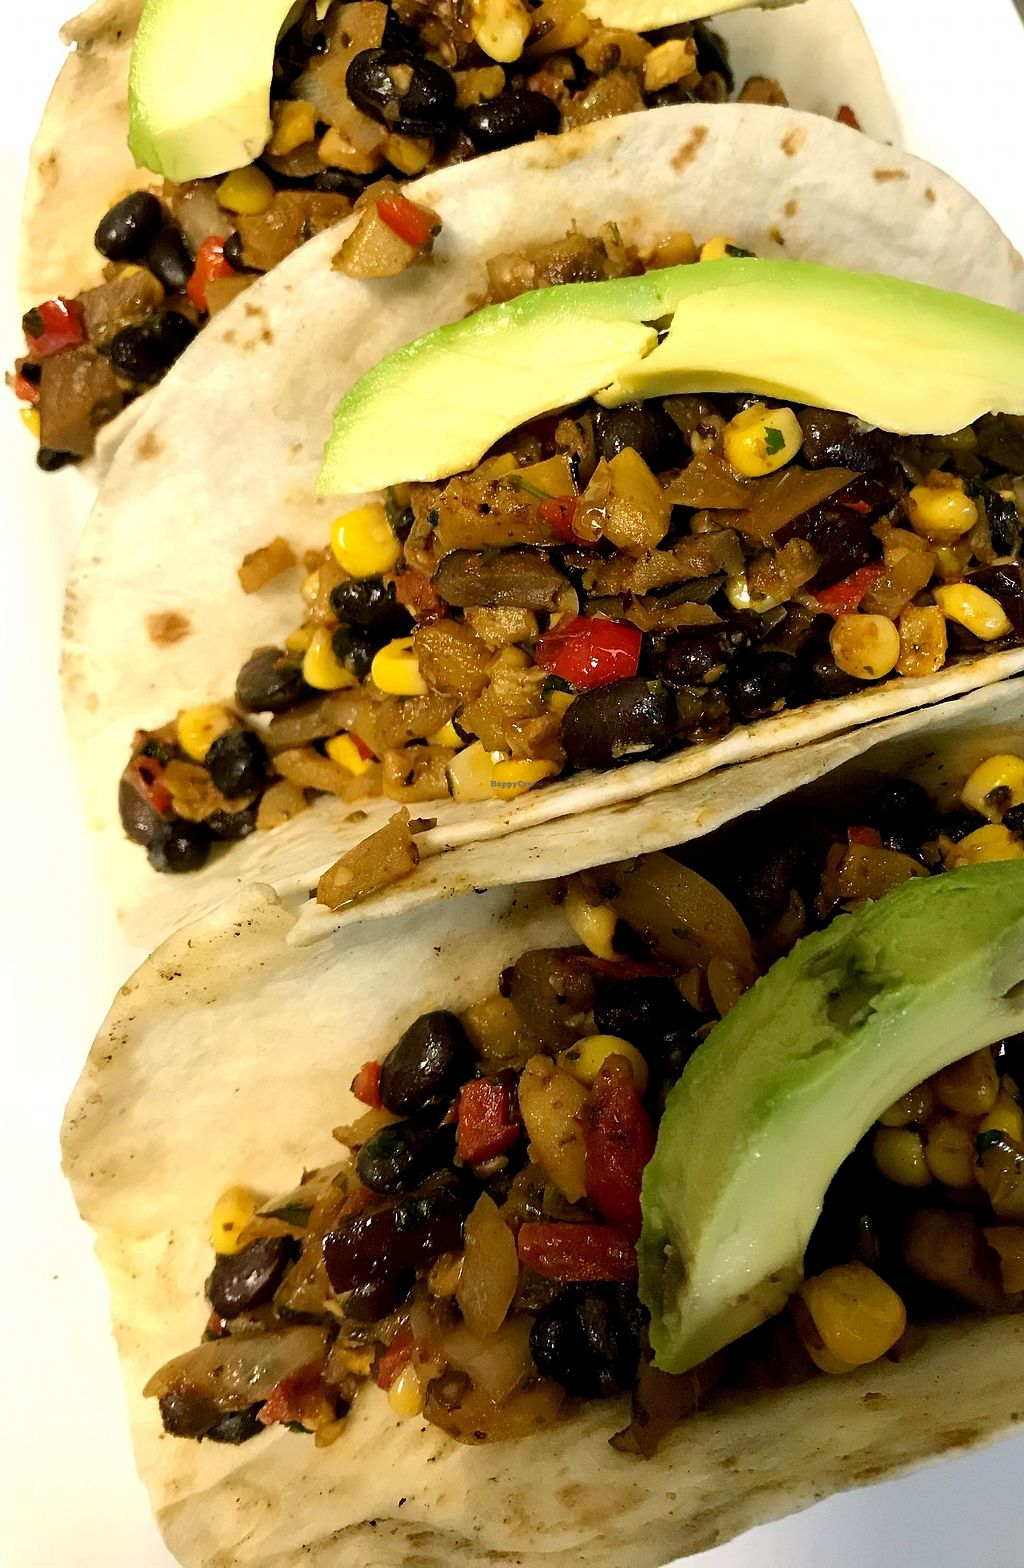 """Photo of S&P Oyster Company  by <a href=""""/members/profile/Spoyster"""">Spoyster</a> <br/> A perfect combination of eggplant, zucchini, squash, red peppers, Spanish onion,  black beans, corn, avacado and a jalapeño cumin crema.  <br/> February 2, 2018  - <a href='/contact/abuse/image/97138/354094'>Report</a>"""